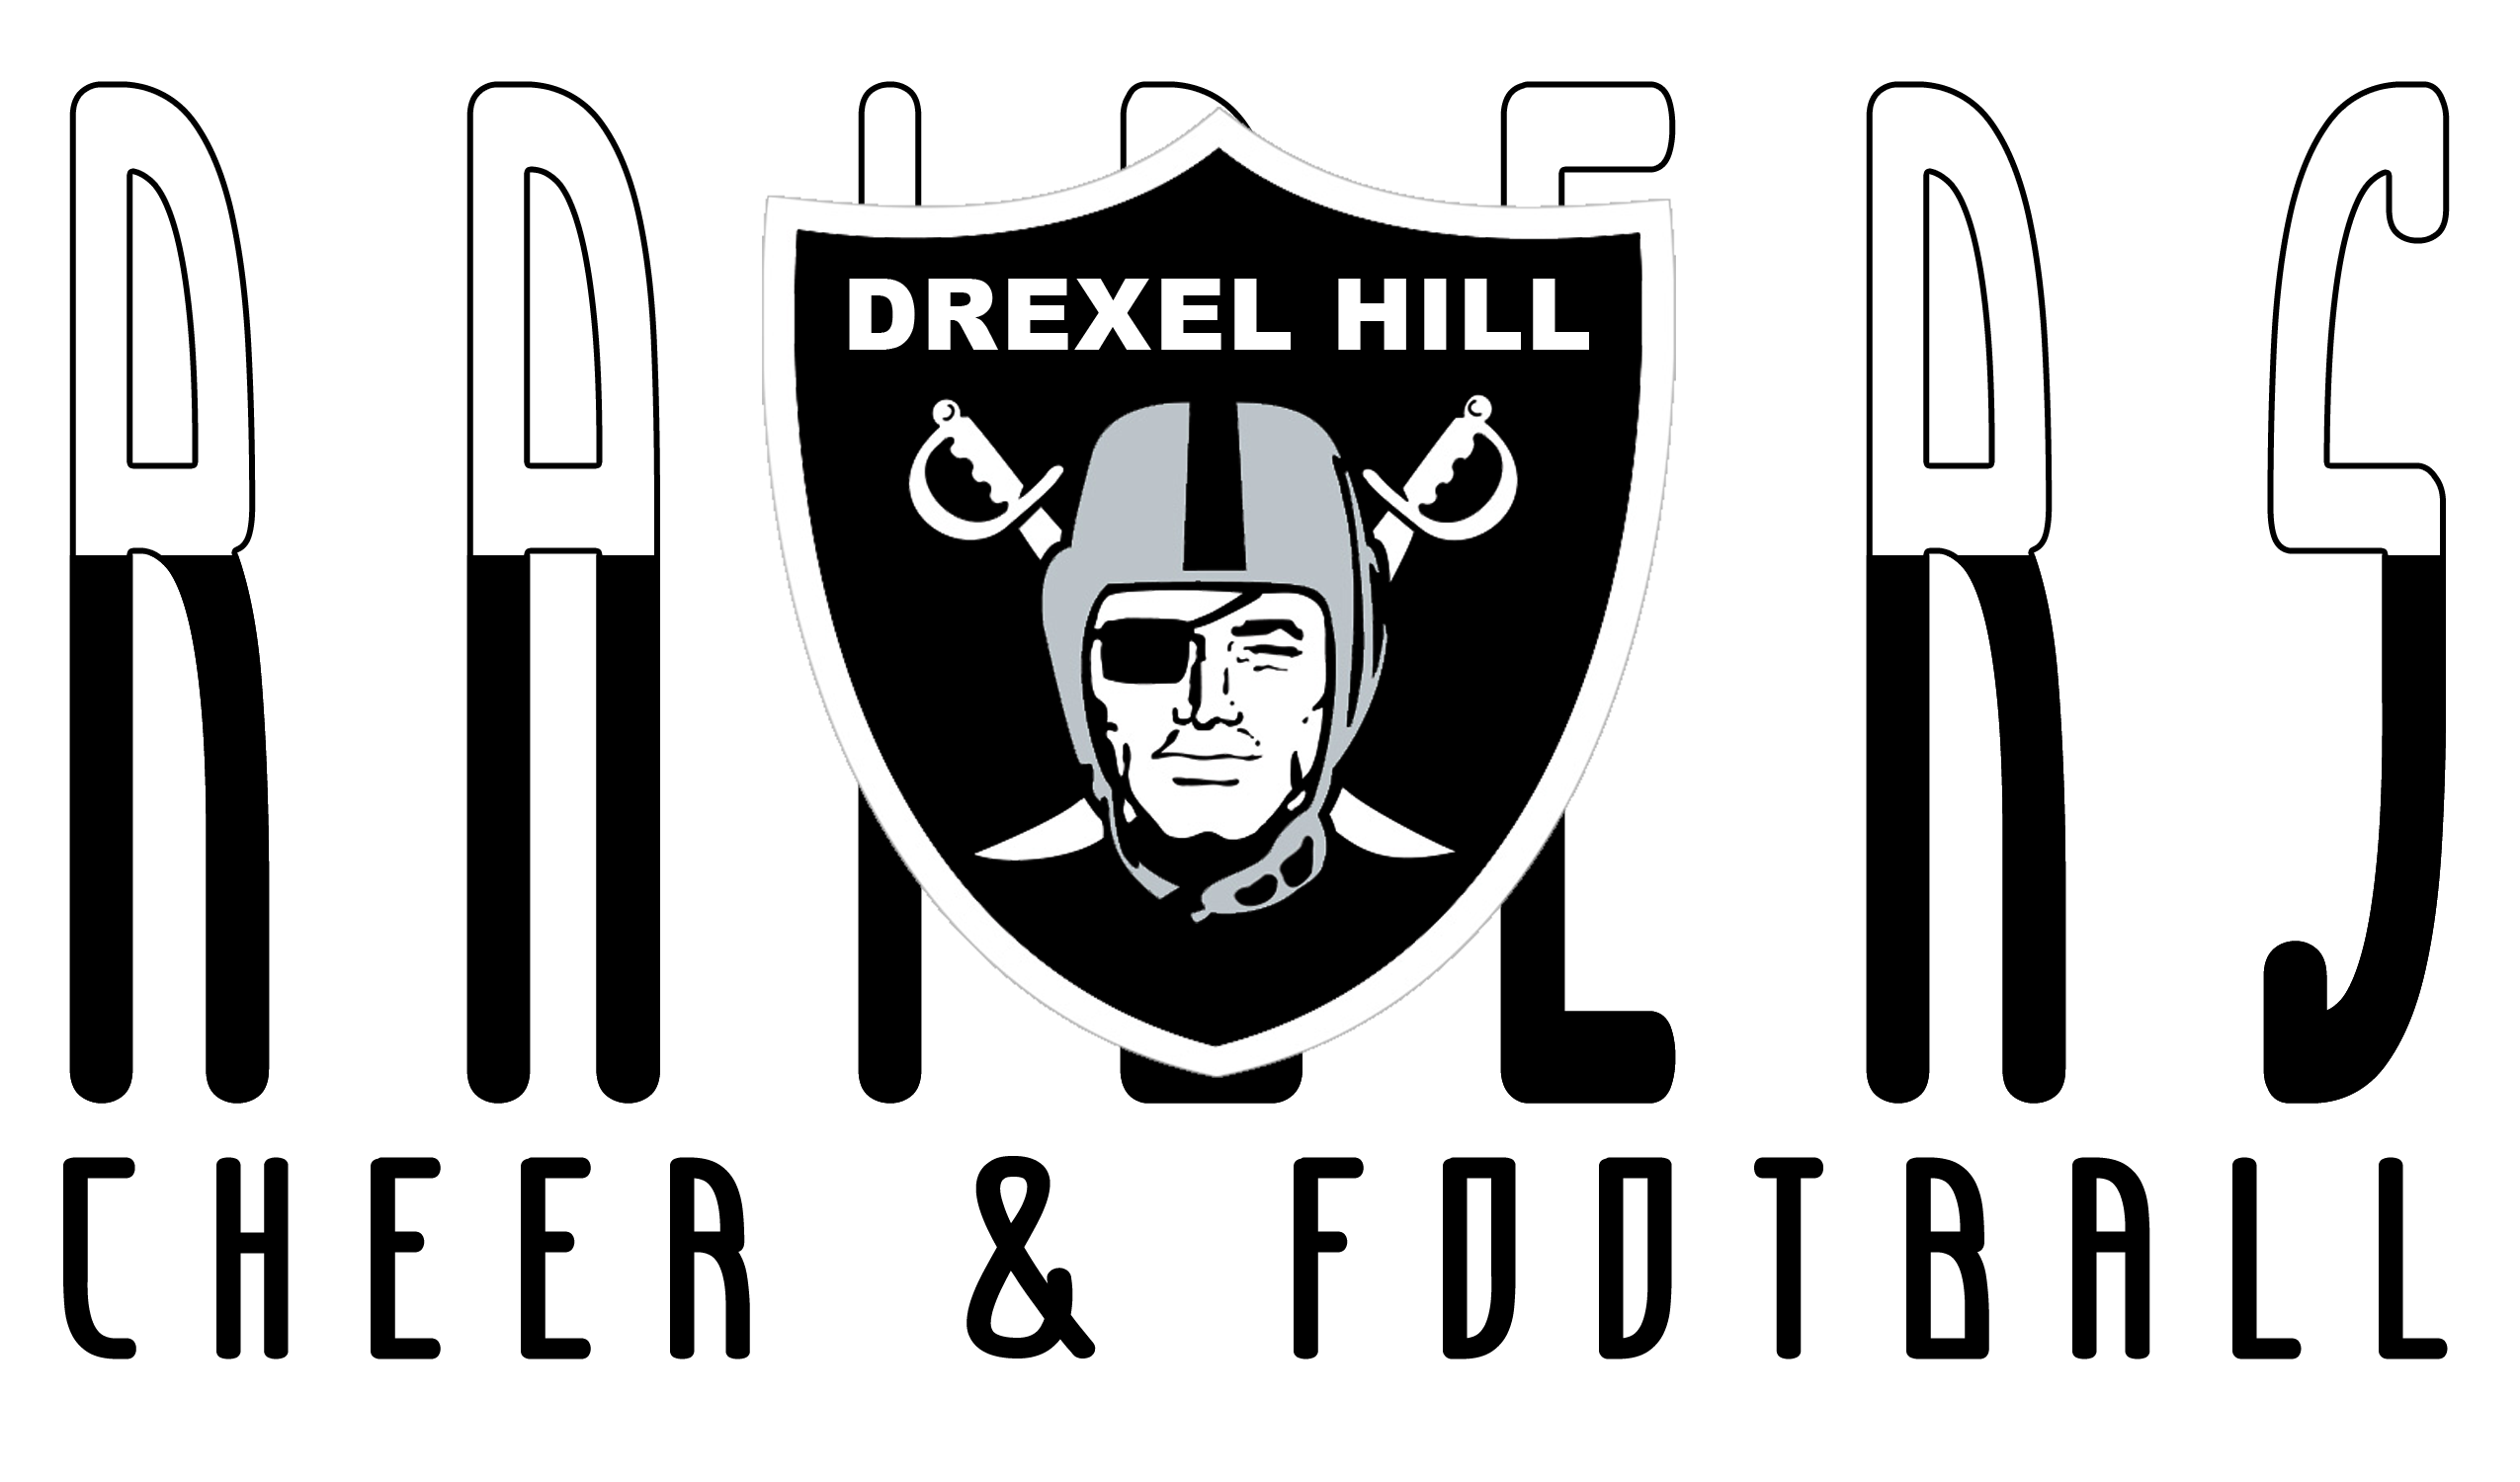 Football field black and white clipart banner download Football Home | Drexel Hill Raiders banner download